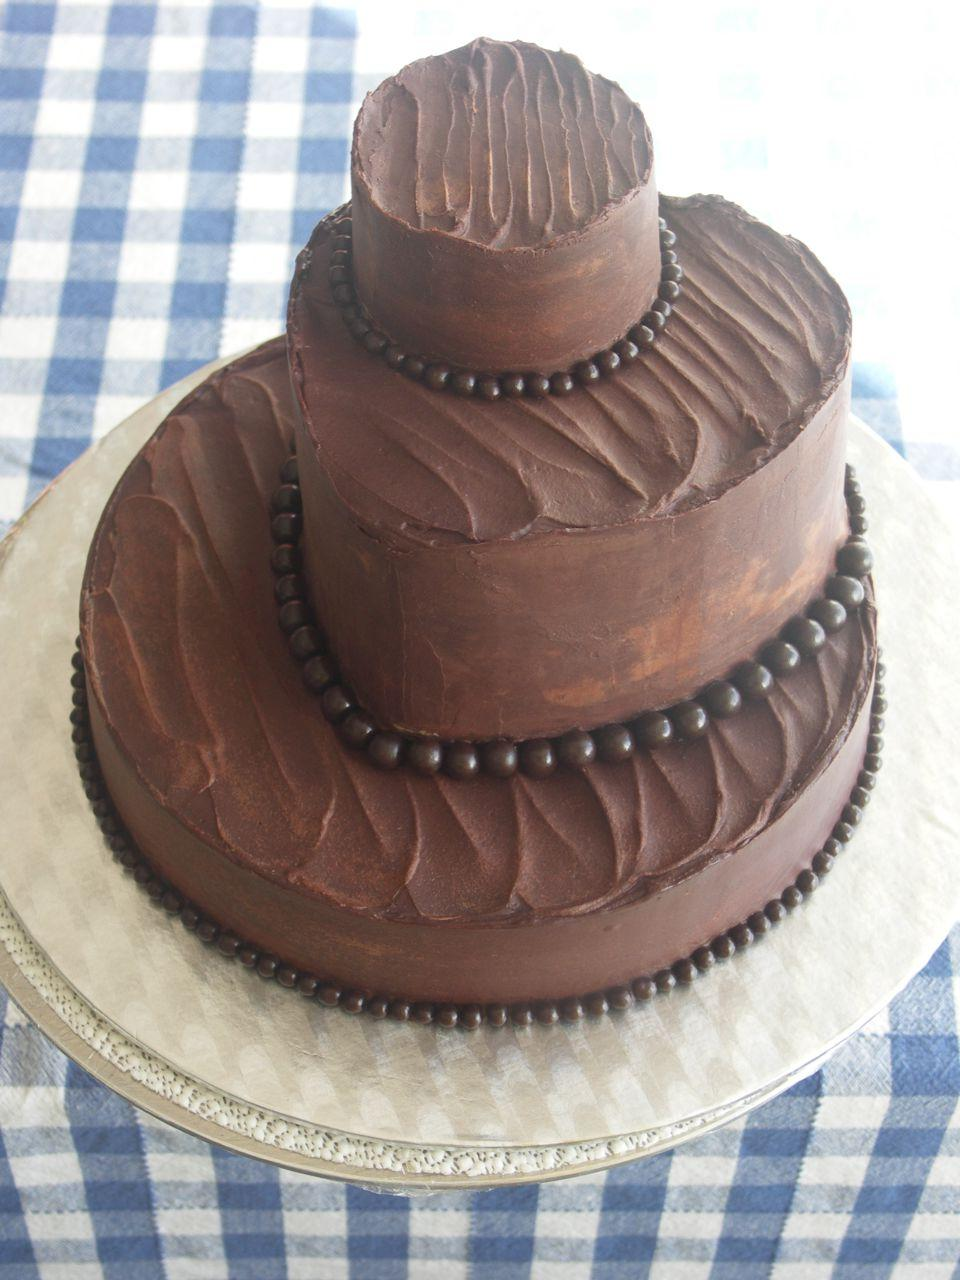 this is a miniature tiered